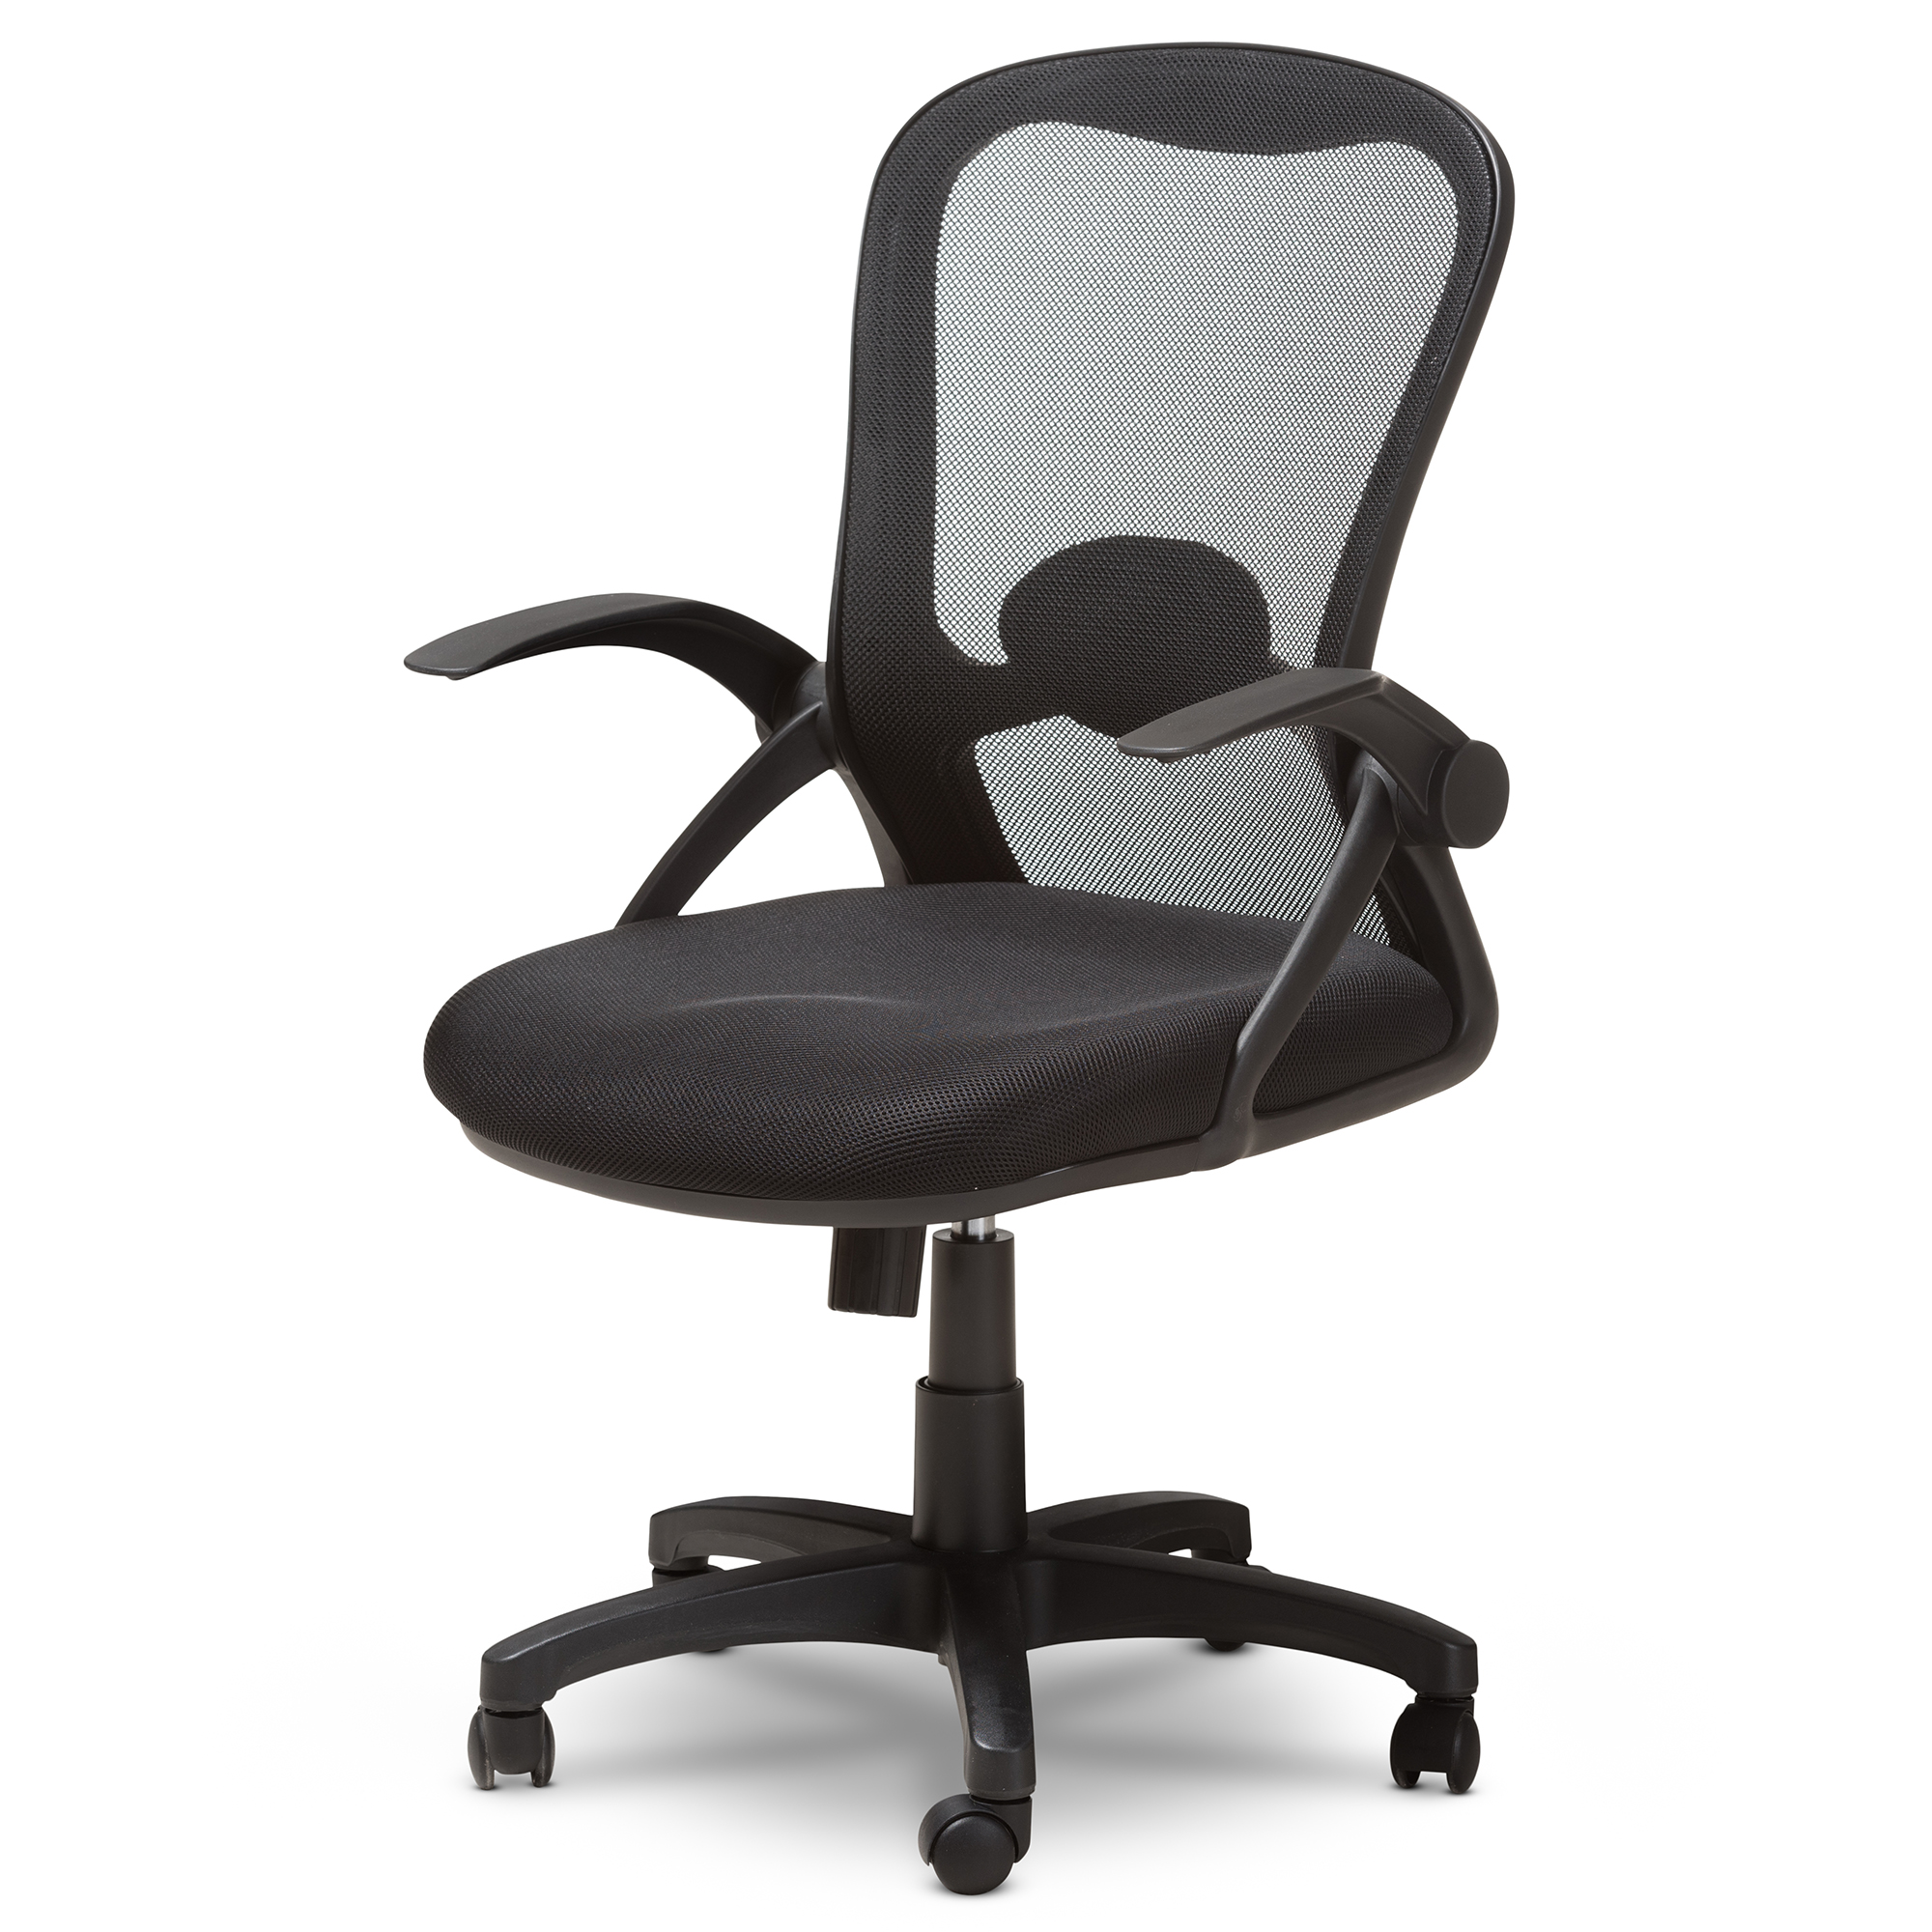 affordable modern office furniture. Wonderful Affordable Baxton Studio Bergmann Modern And Contemporary Ergonomic Black Mesh Office  Chair Affordable Modern Furniture In Chicago With Furniture E